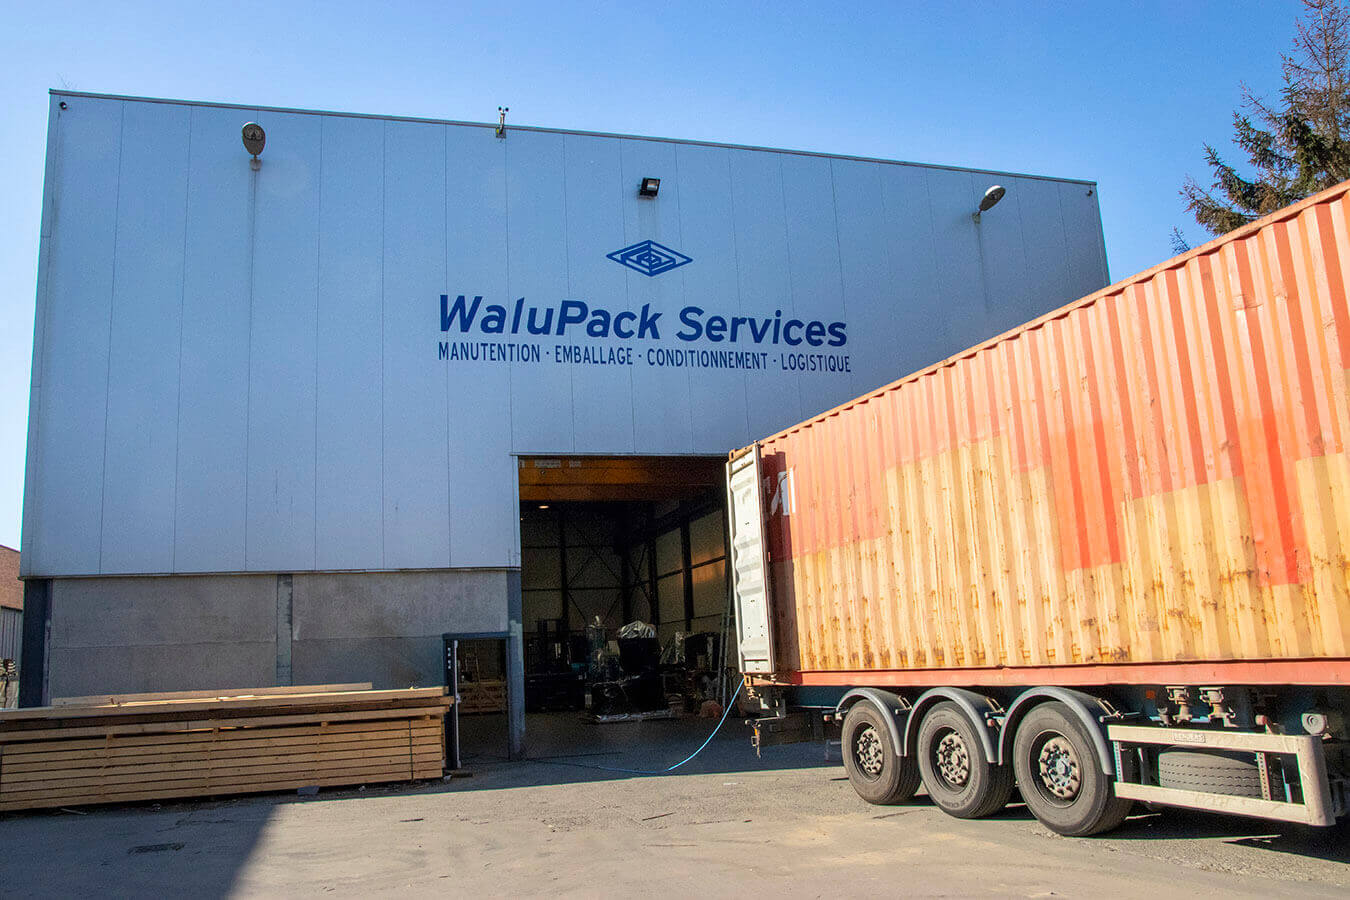 WaluPack Services : Our team of professionals has powerful equipment